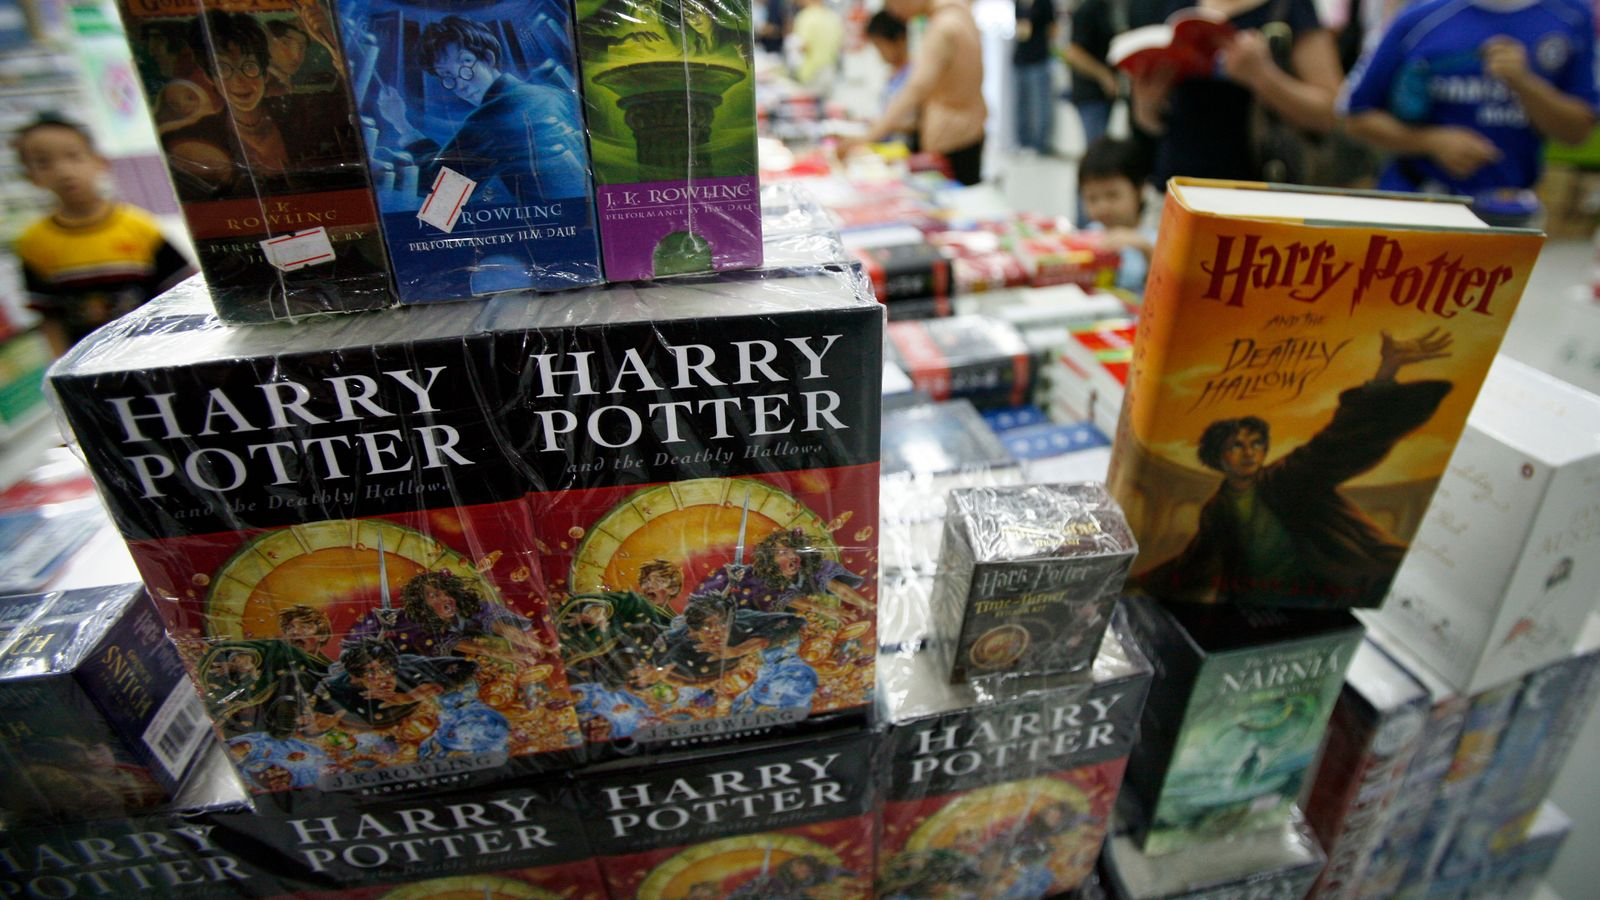 Harry Potter publisher Bloomsbury thrives during pandemic lockdowns